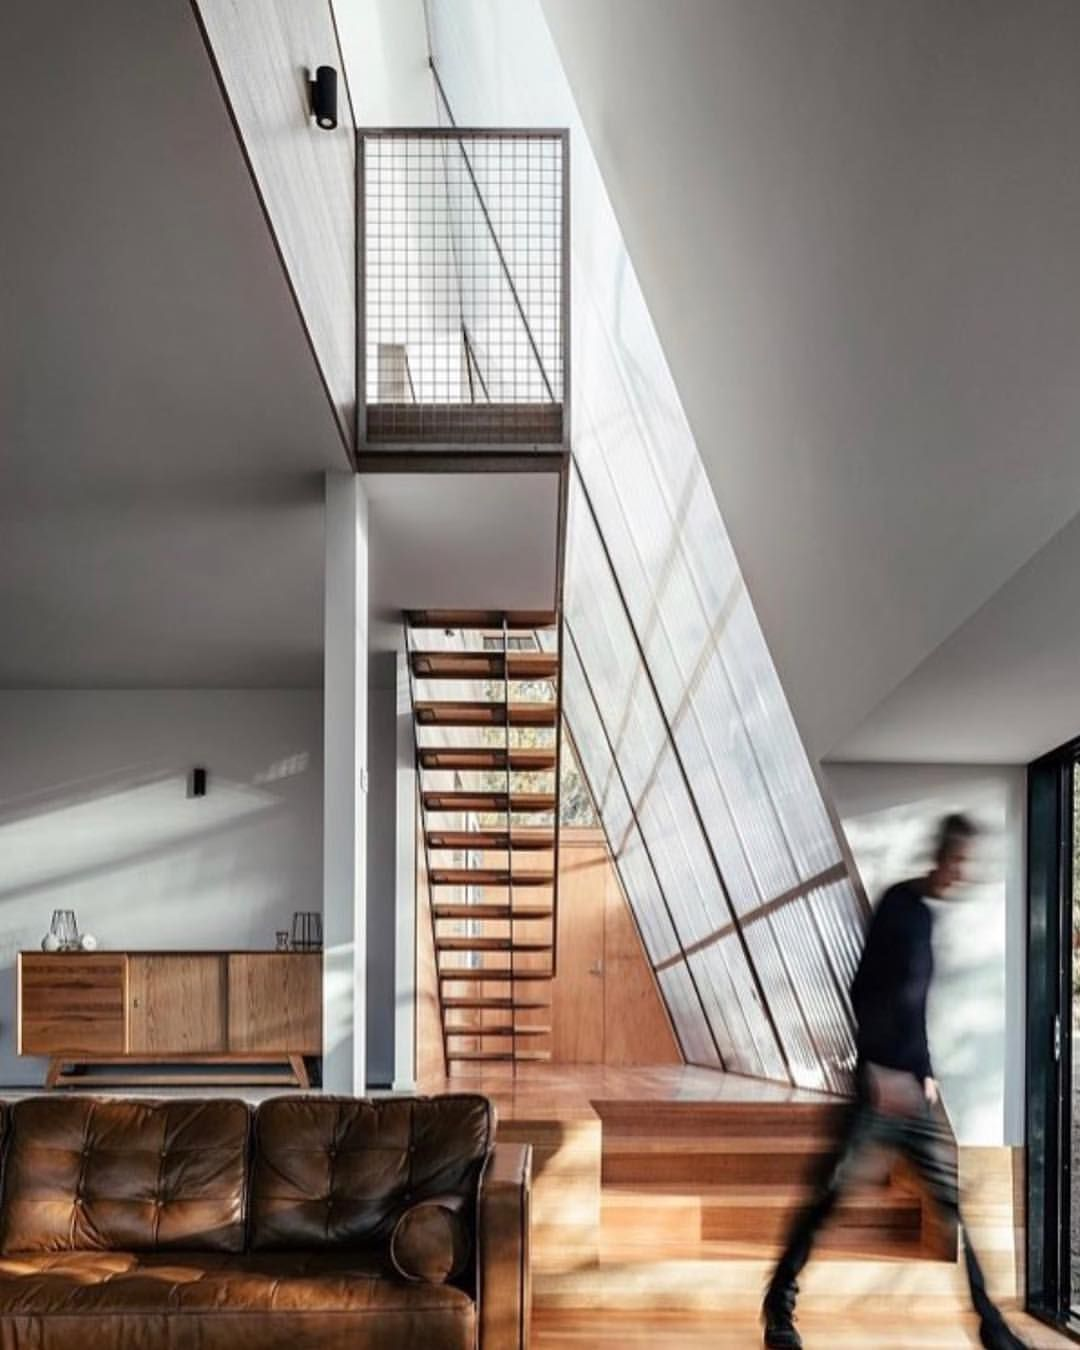 6 922 Likes 68 Comments Local Architecture Design Thelocalproject On Instagram Minimalism Interior Interior Design Inspiration Minimal Interior Design